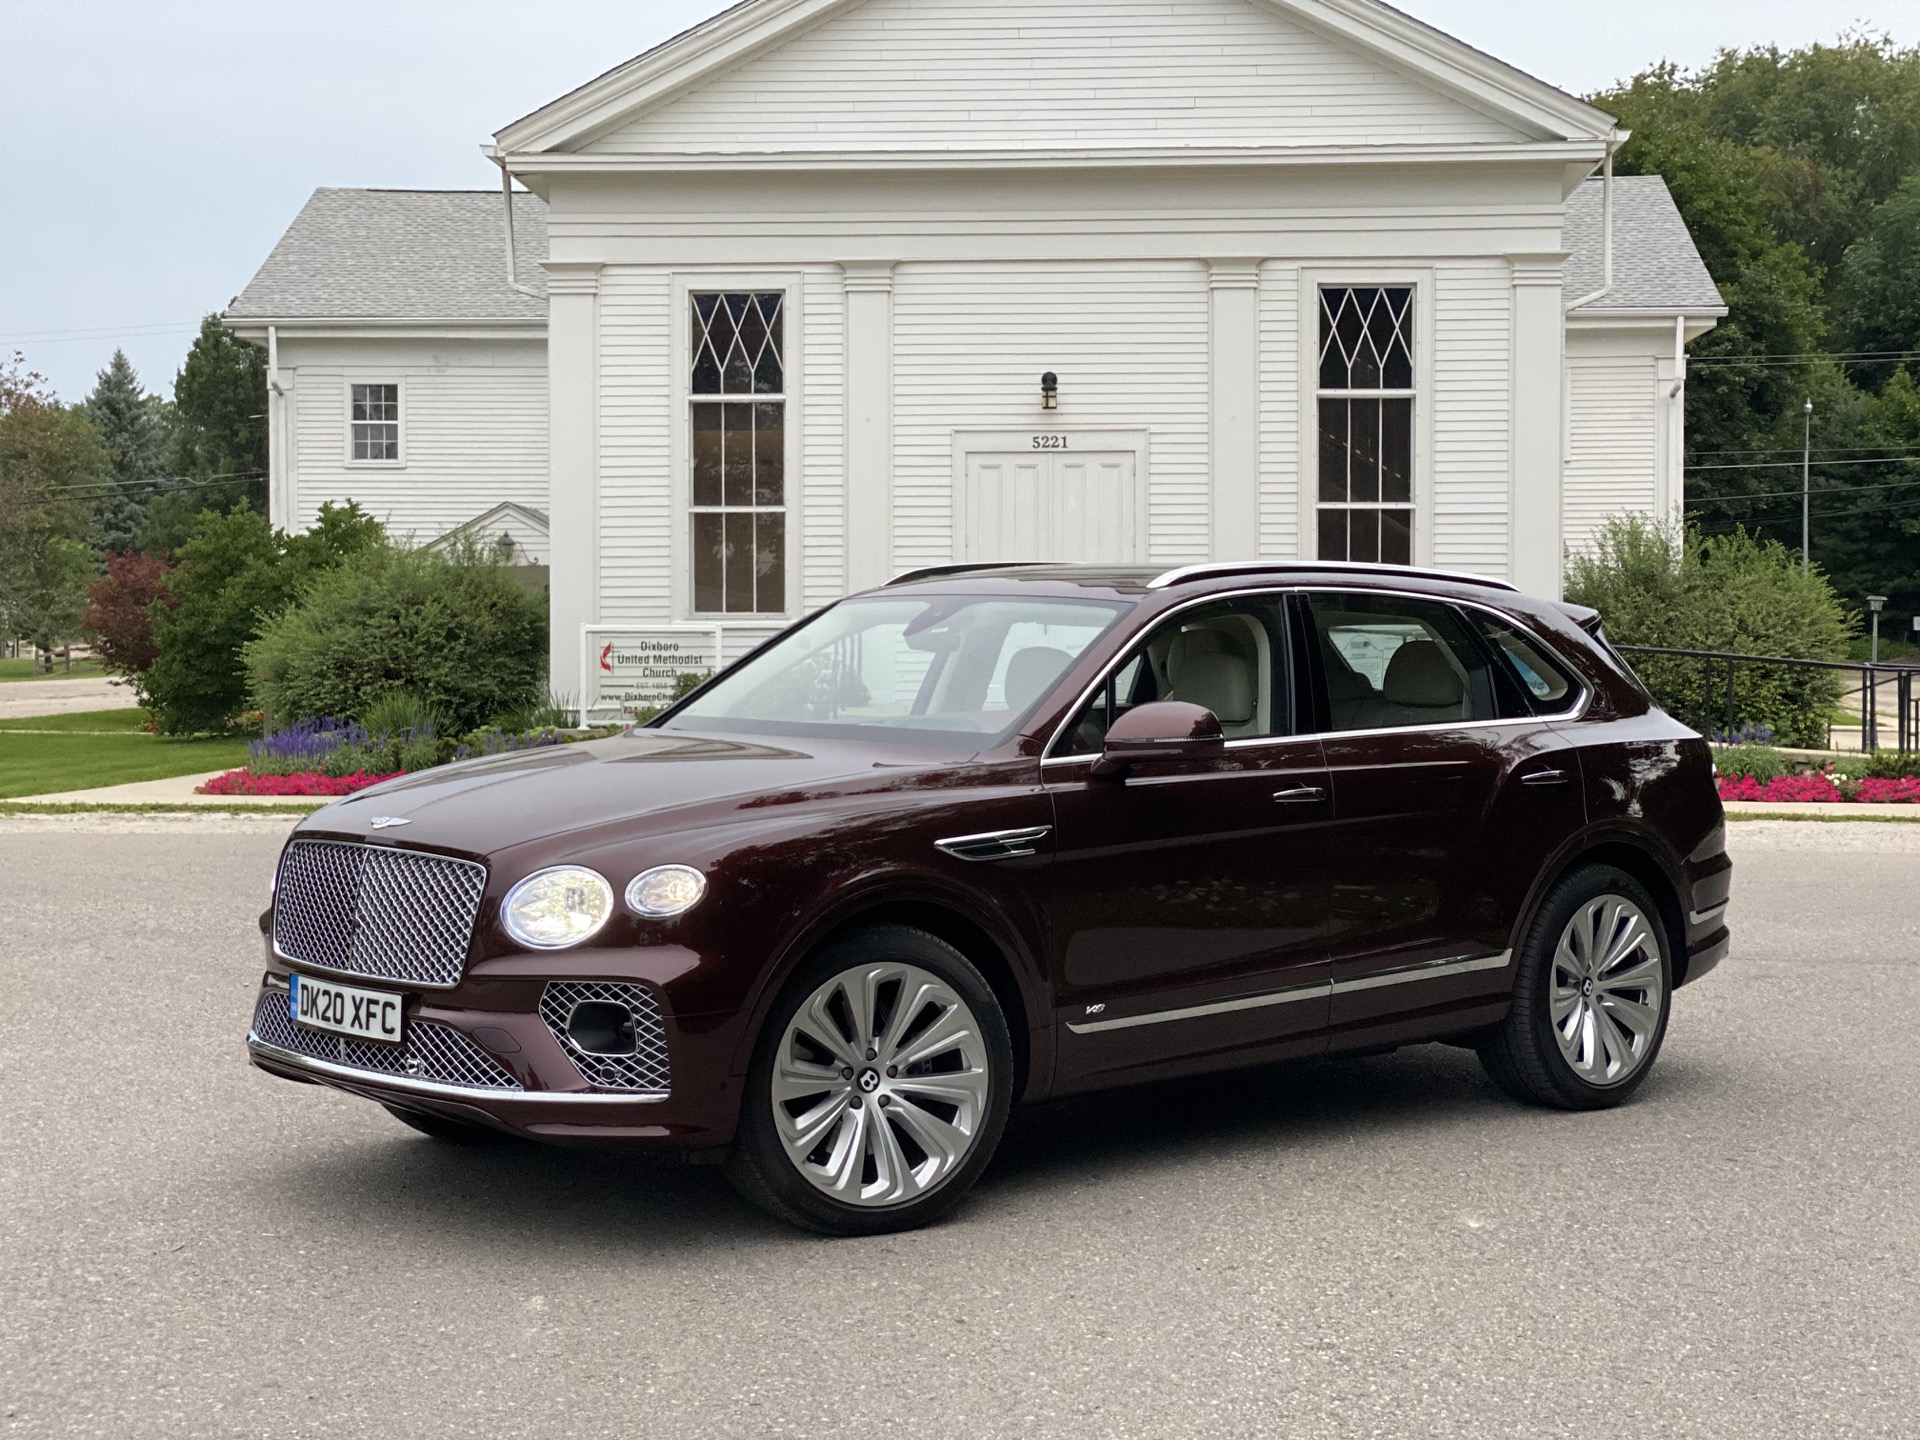 2015 - [Bentley] Bentayga - Page 16 2021-bentley-bentayga_100755837_h